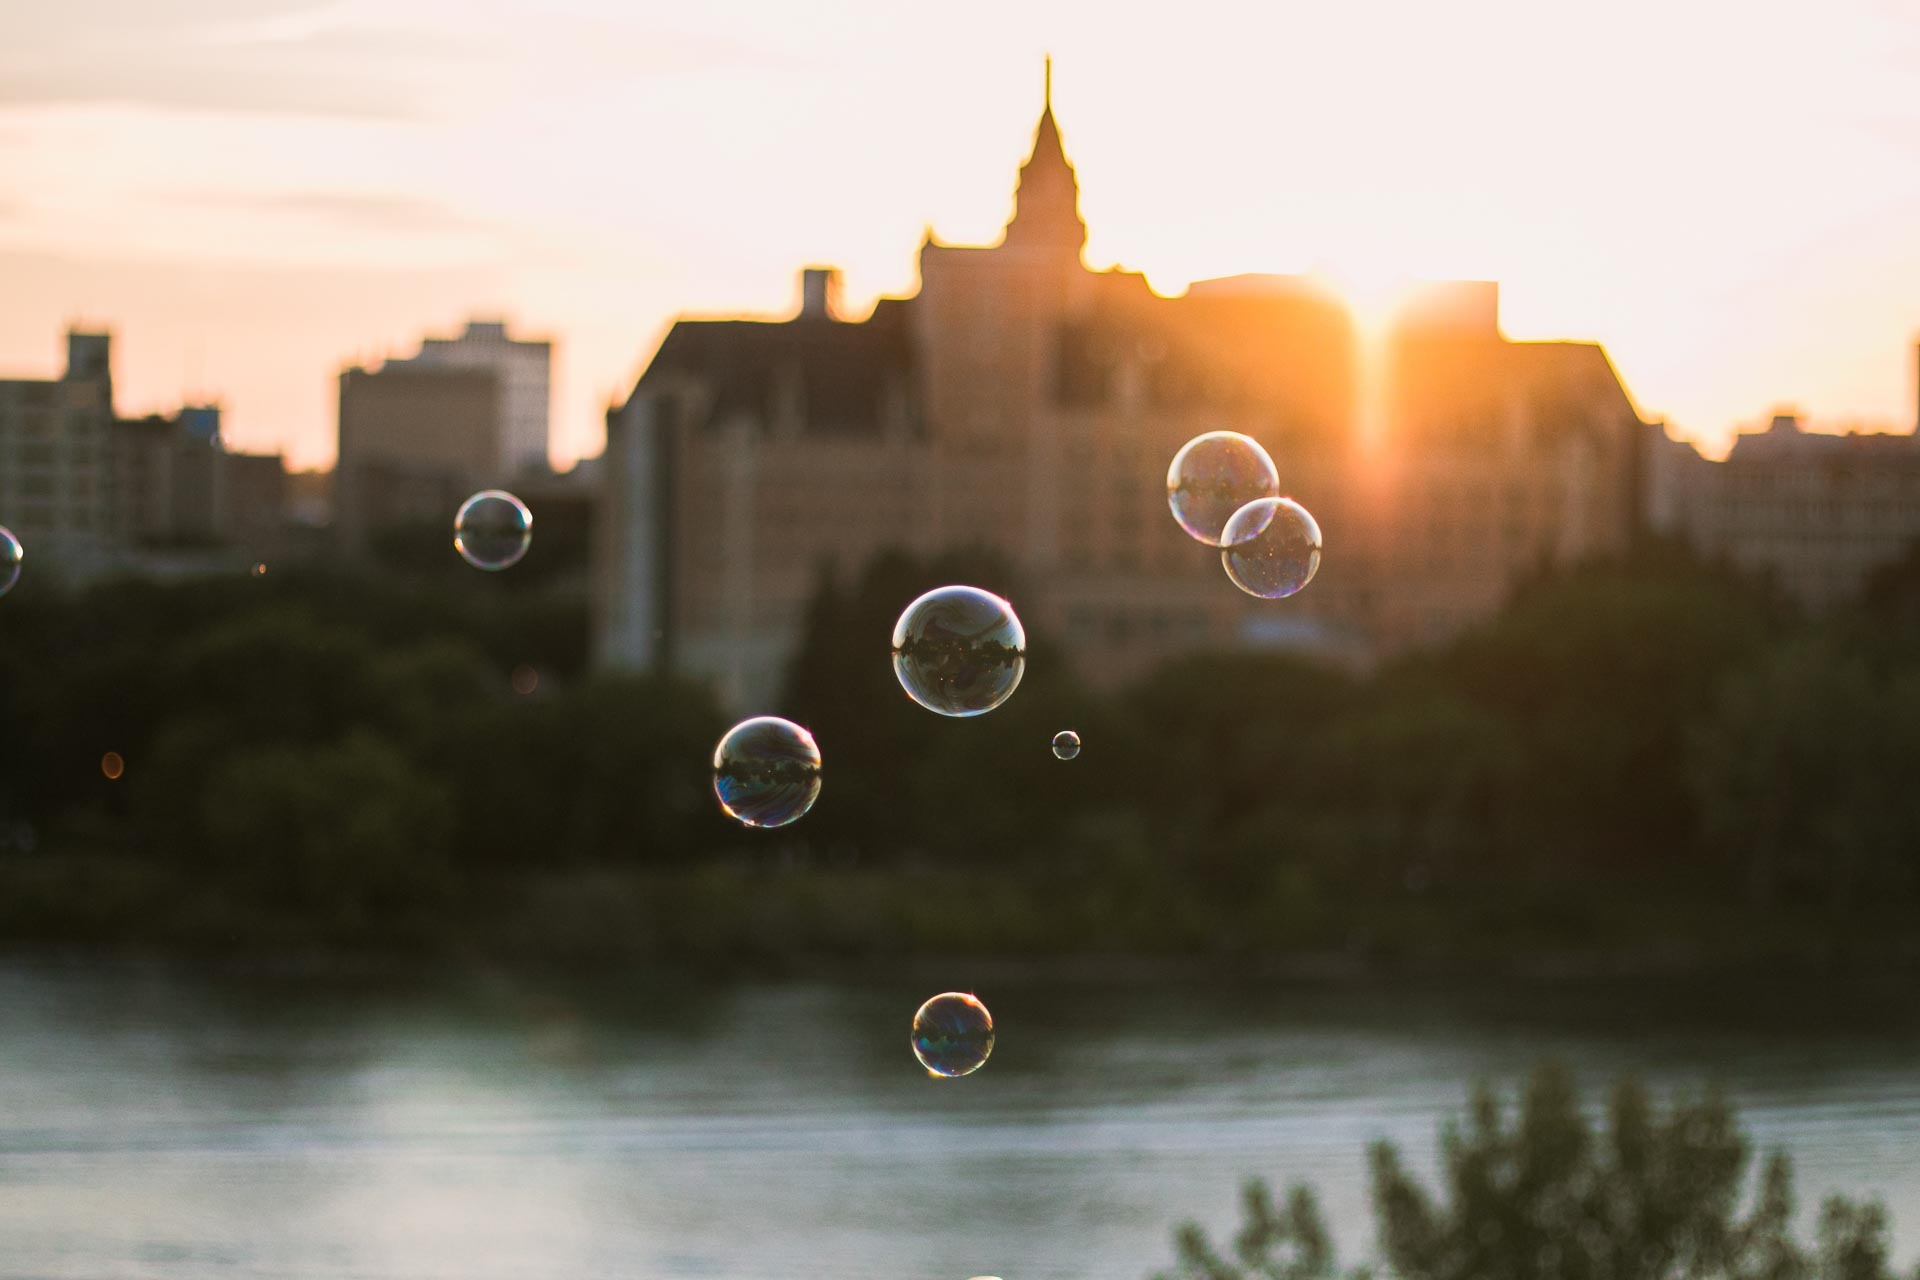 The Bessborough in Saskatoon in the distance across the water with bubbles in focus in the foreground.